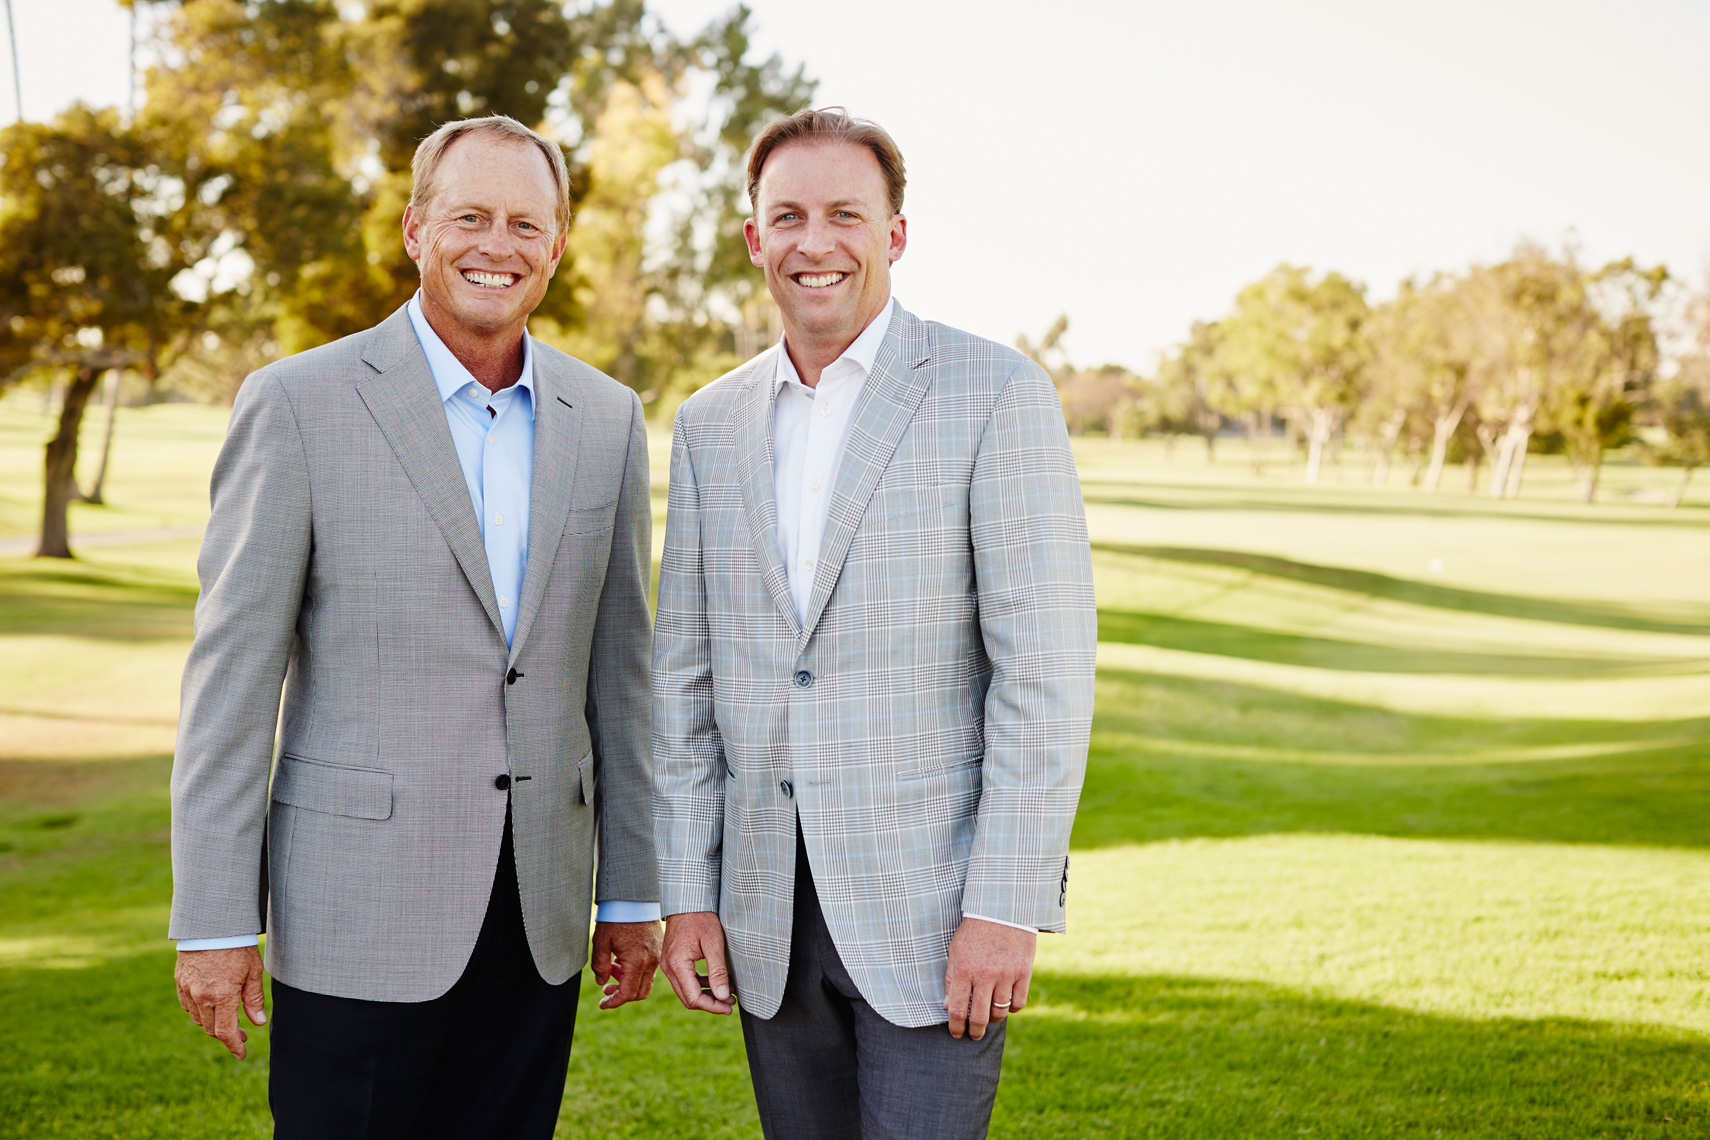 Founders of Newport Beach Country Club pose on Golf course.